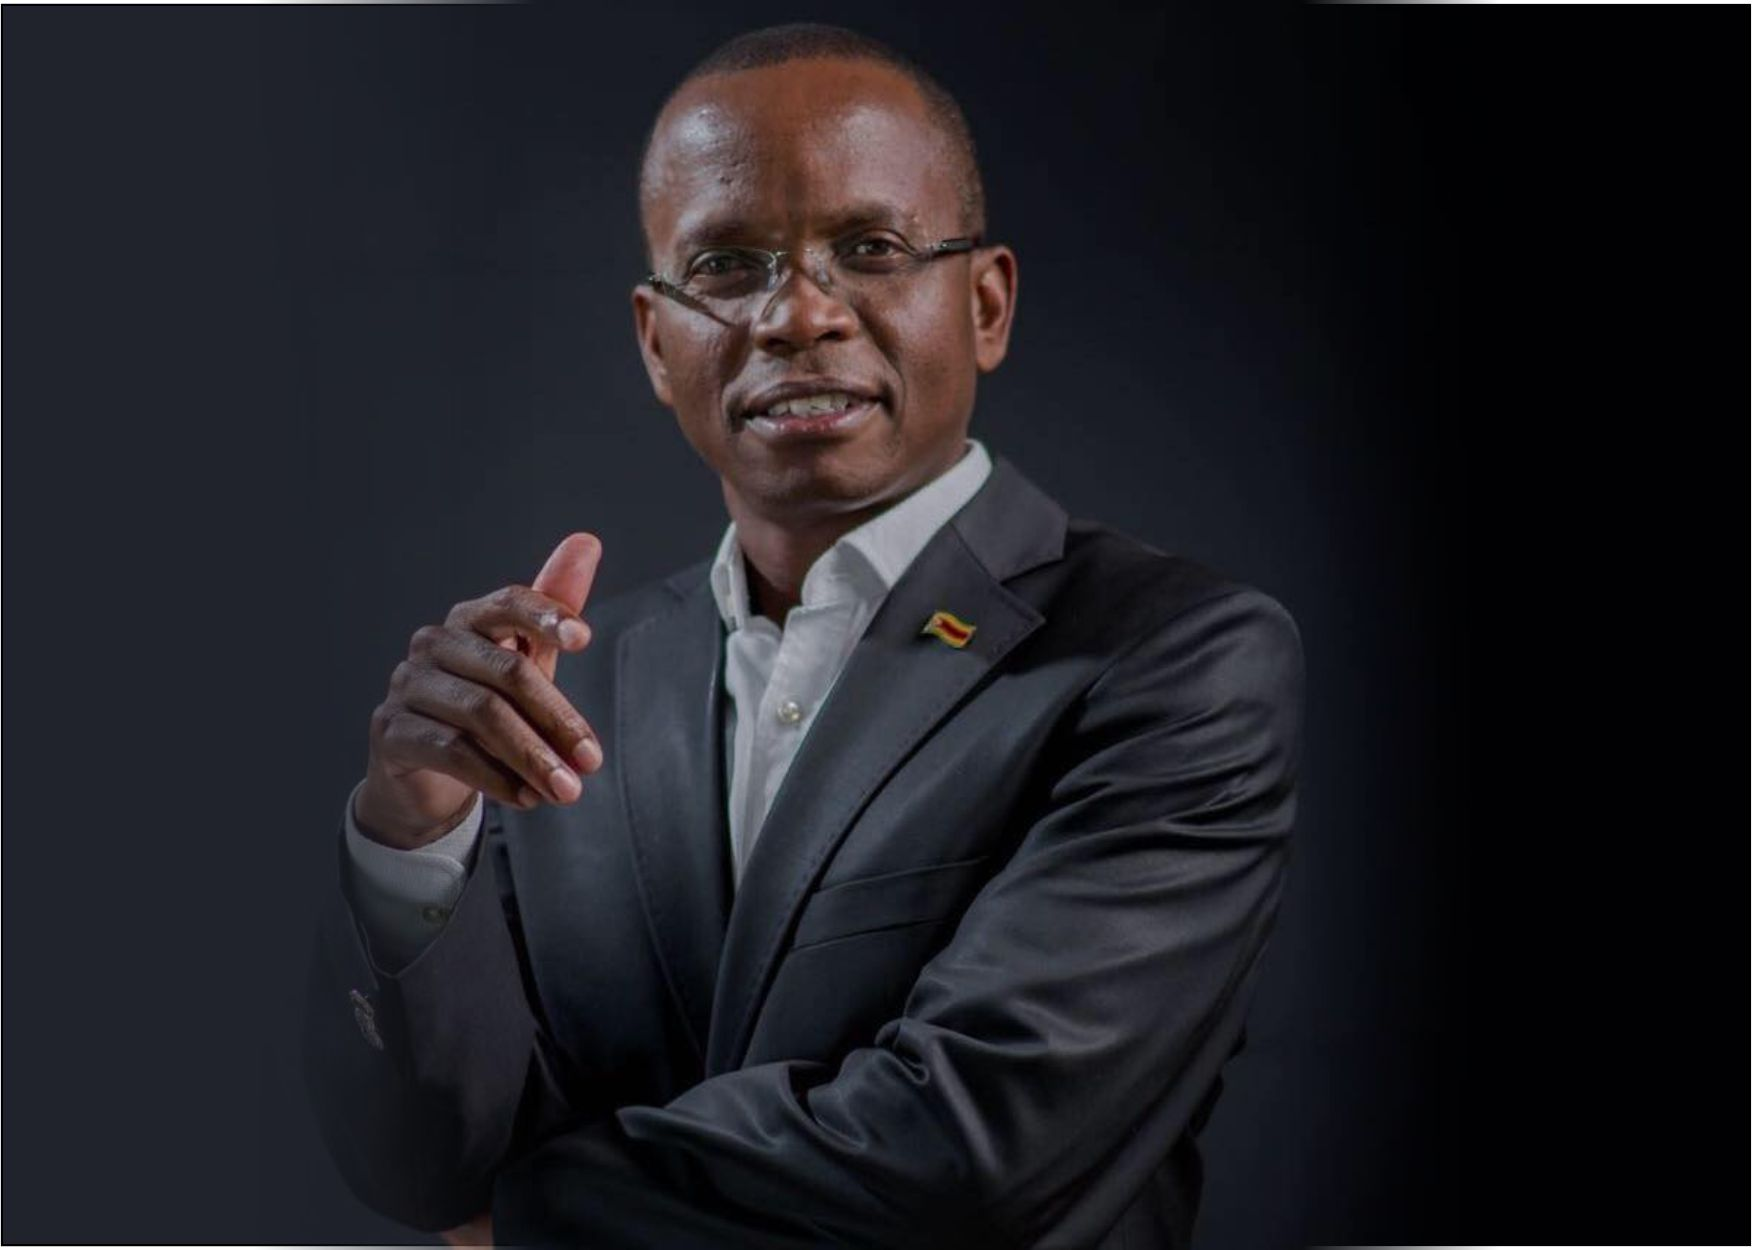 Munyeza Dumps Church Post After Being Caught In Adultery Storm!